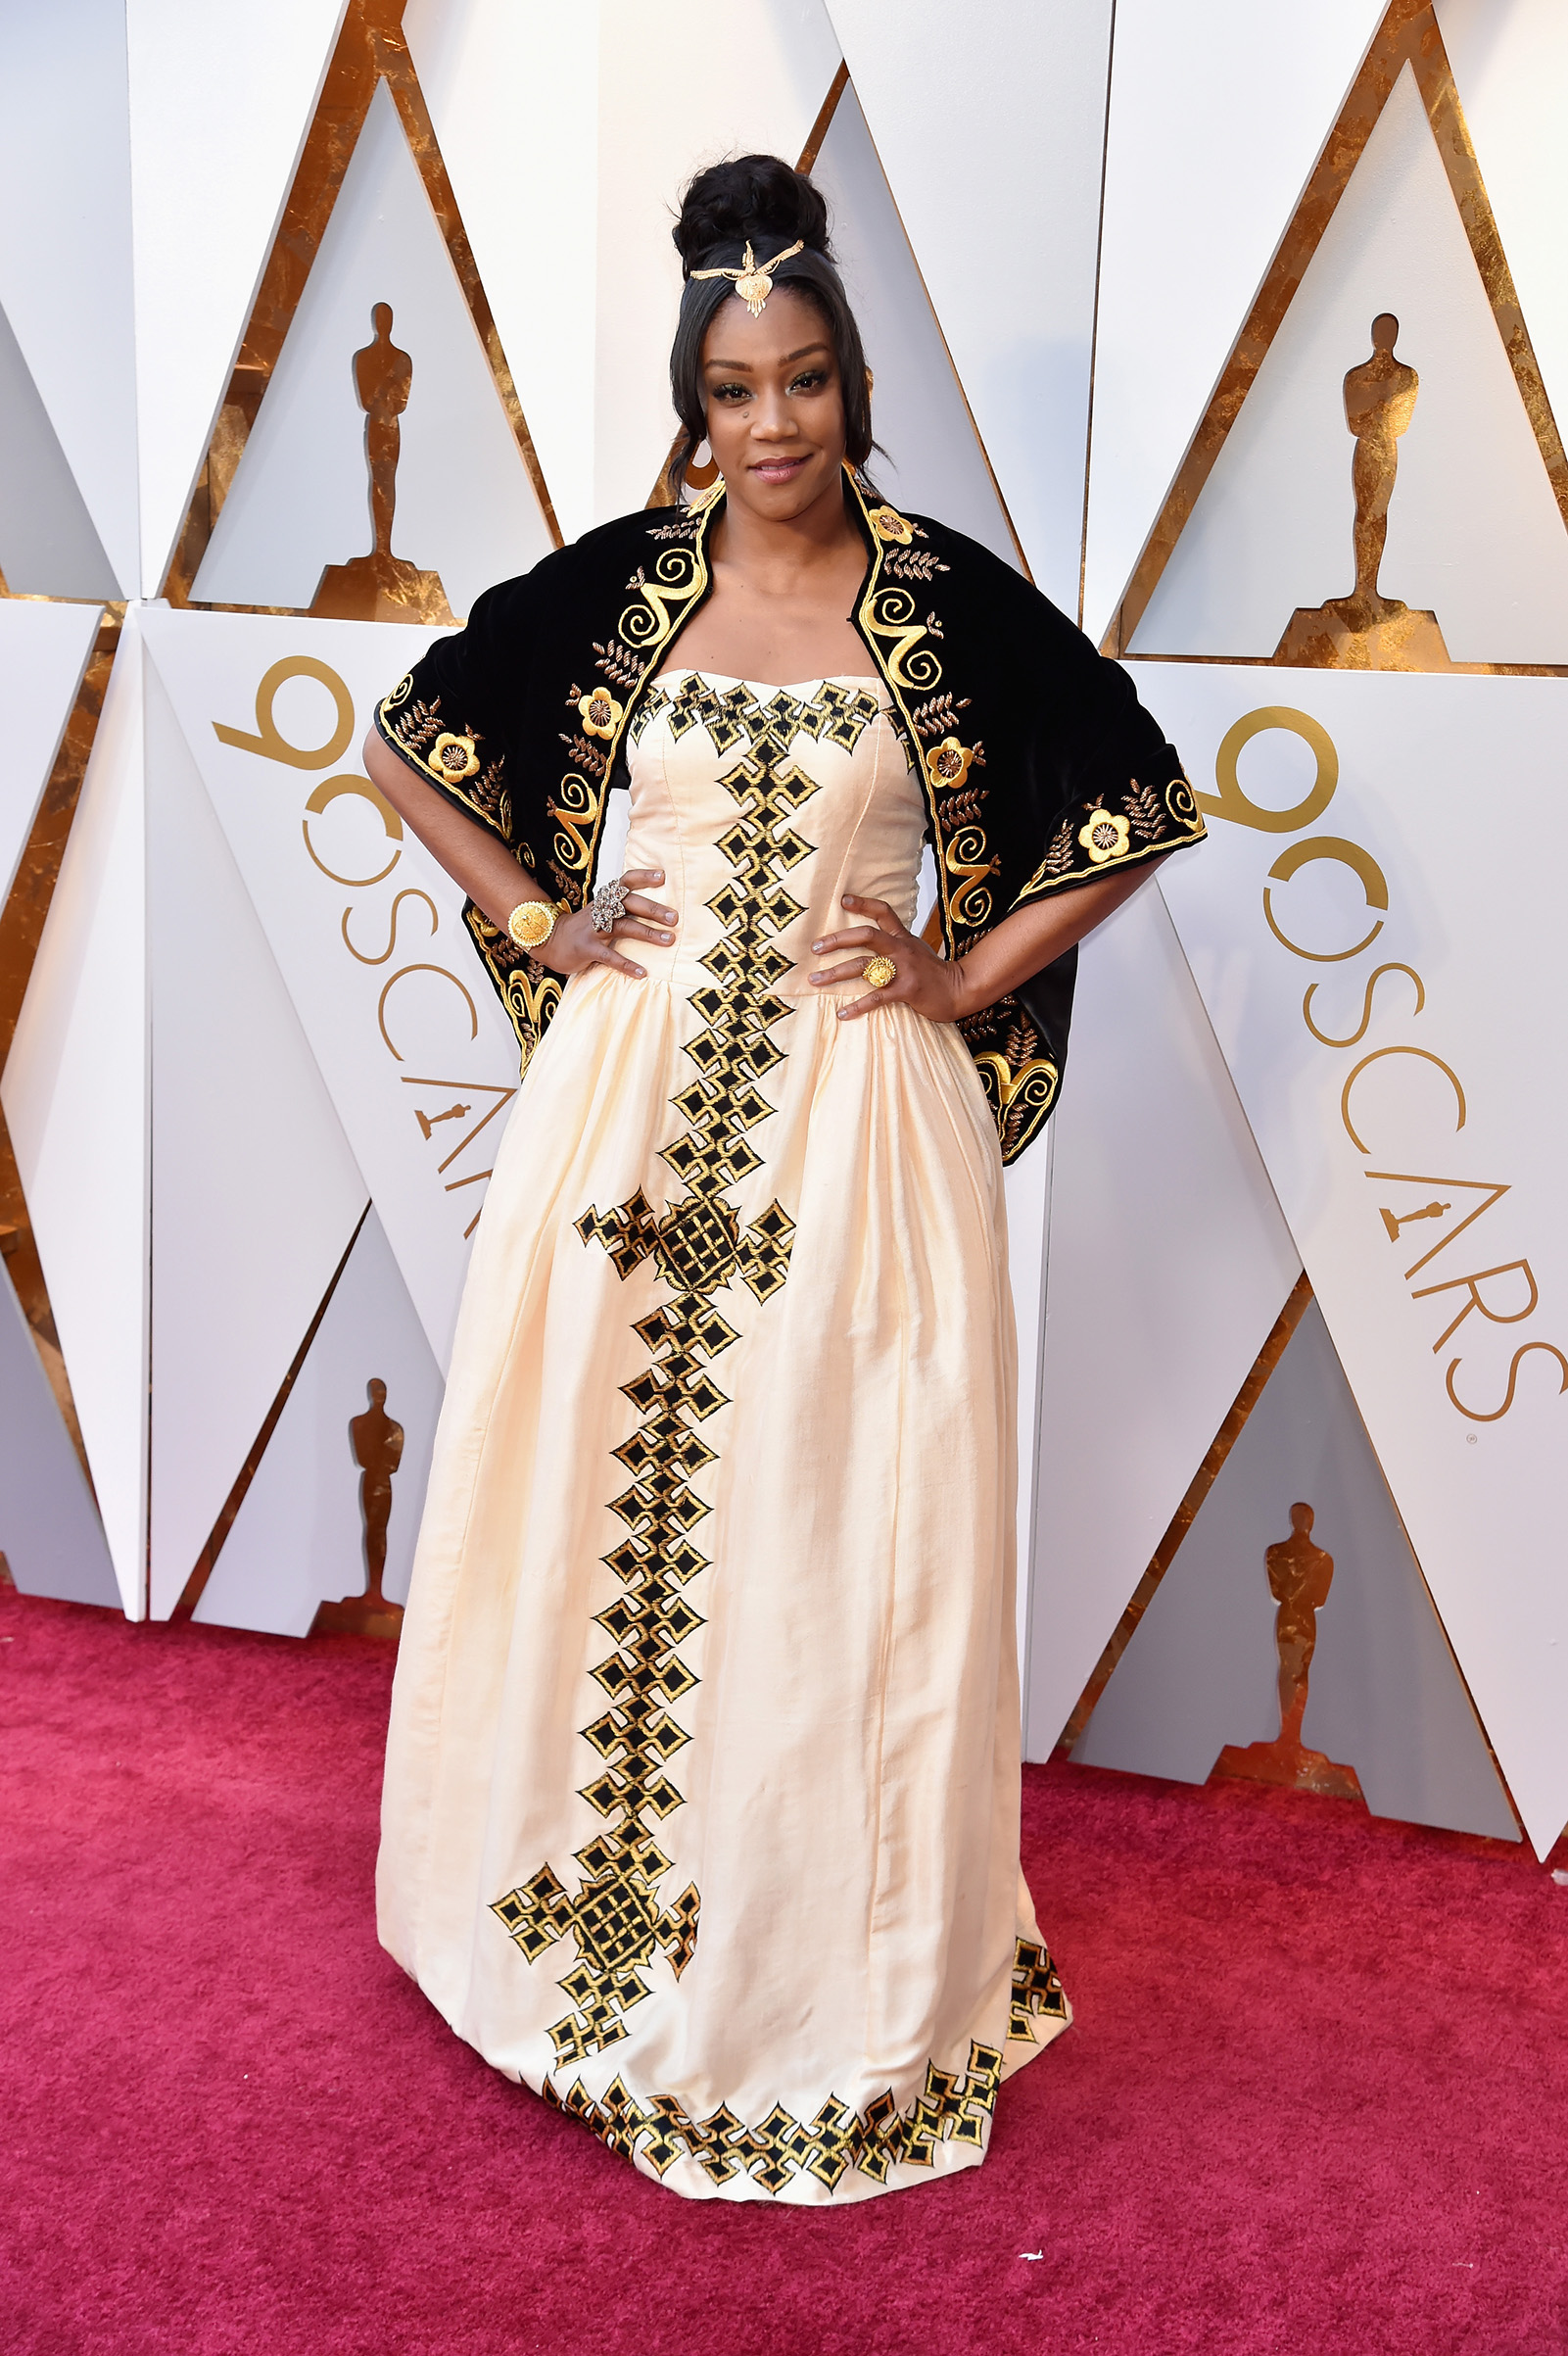 90th Academy Awards Tiffany Haddish Red Carpet Outfit